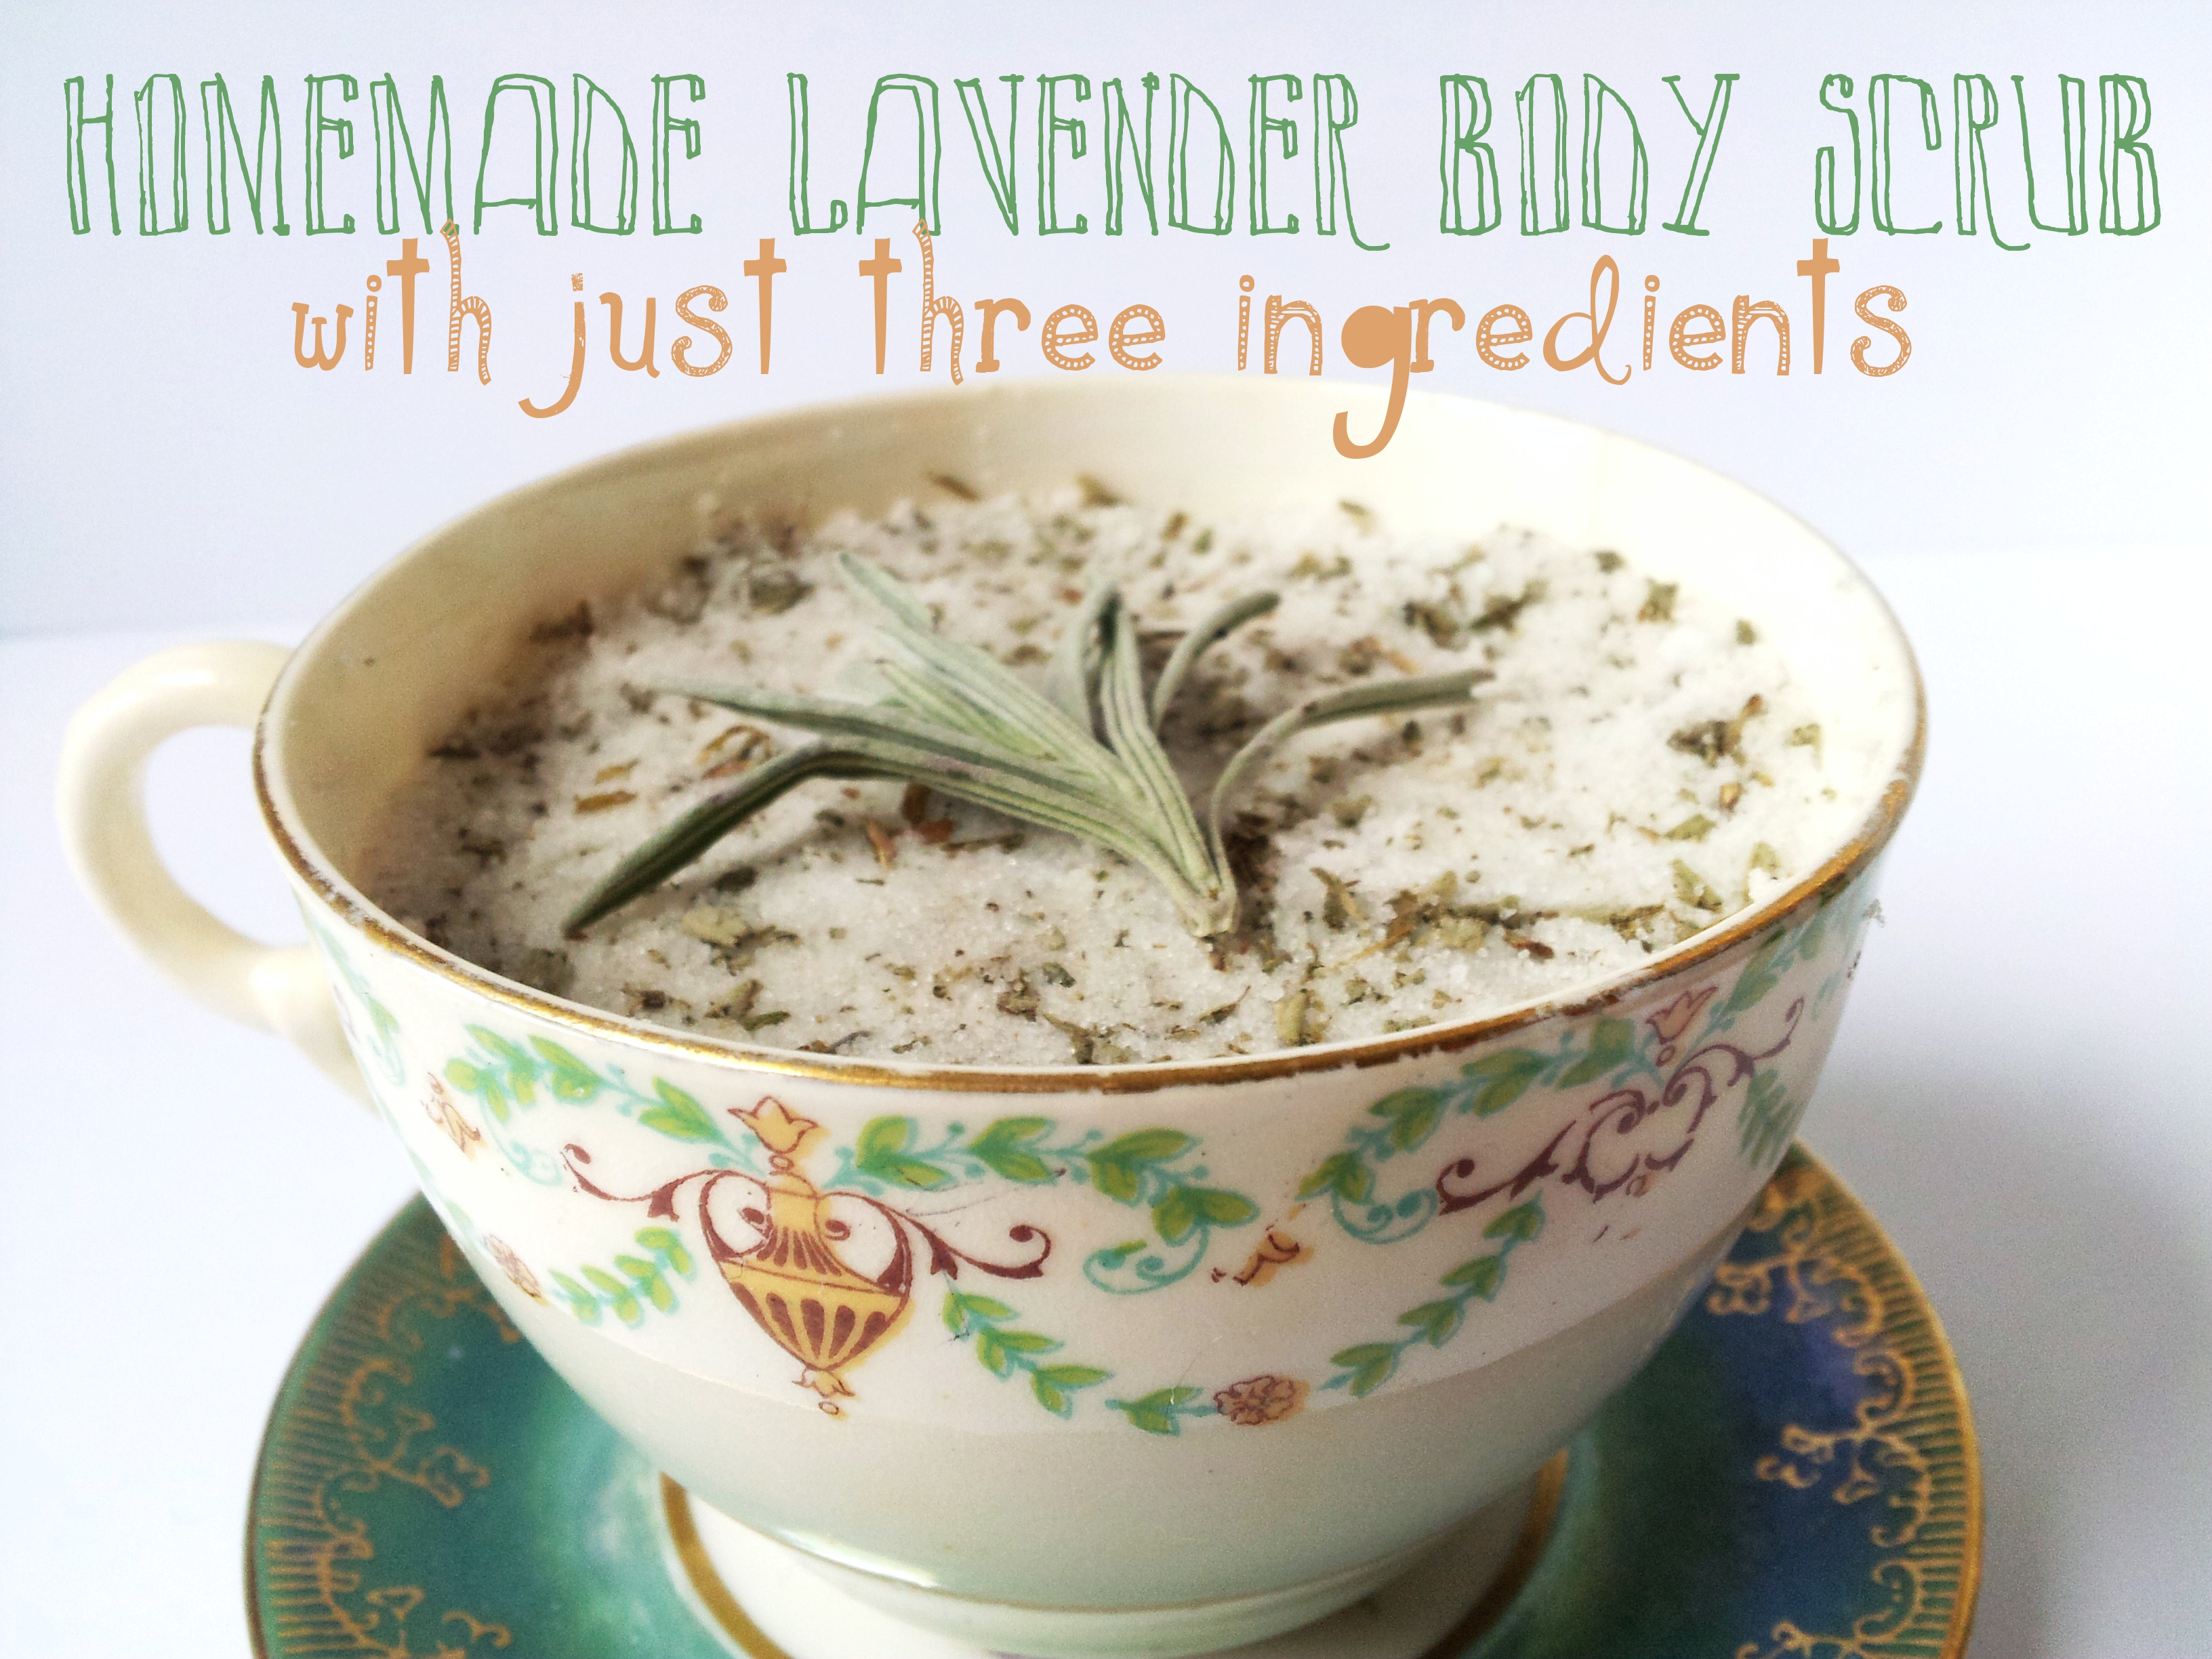 Homamde Body Scrub in a Teacup